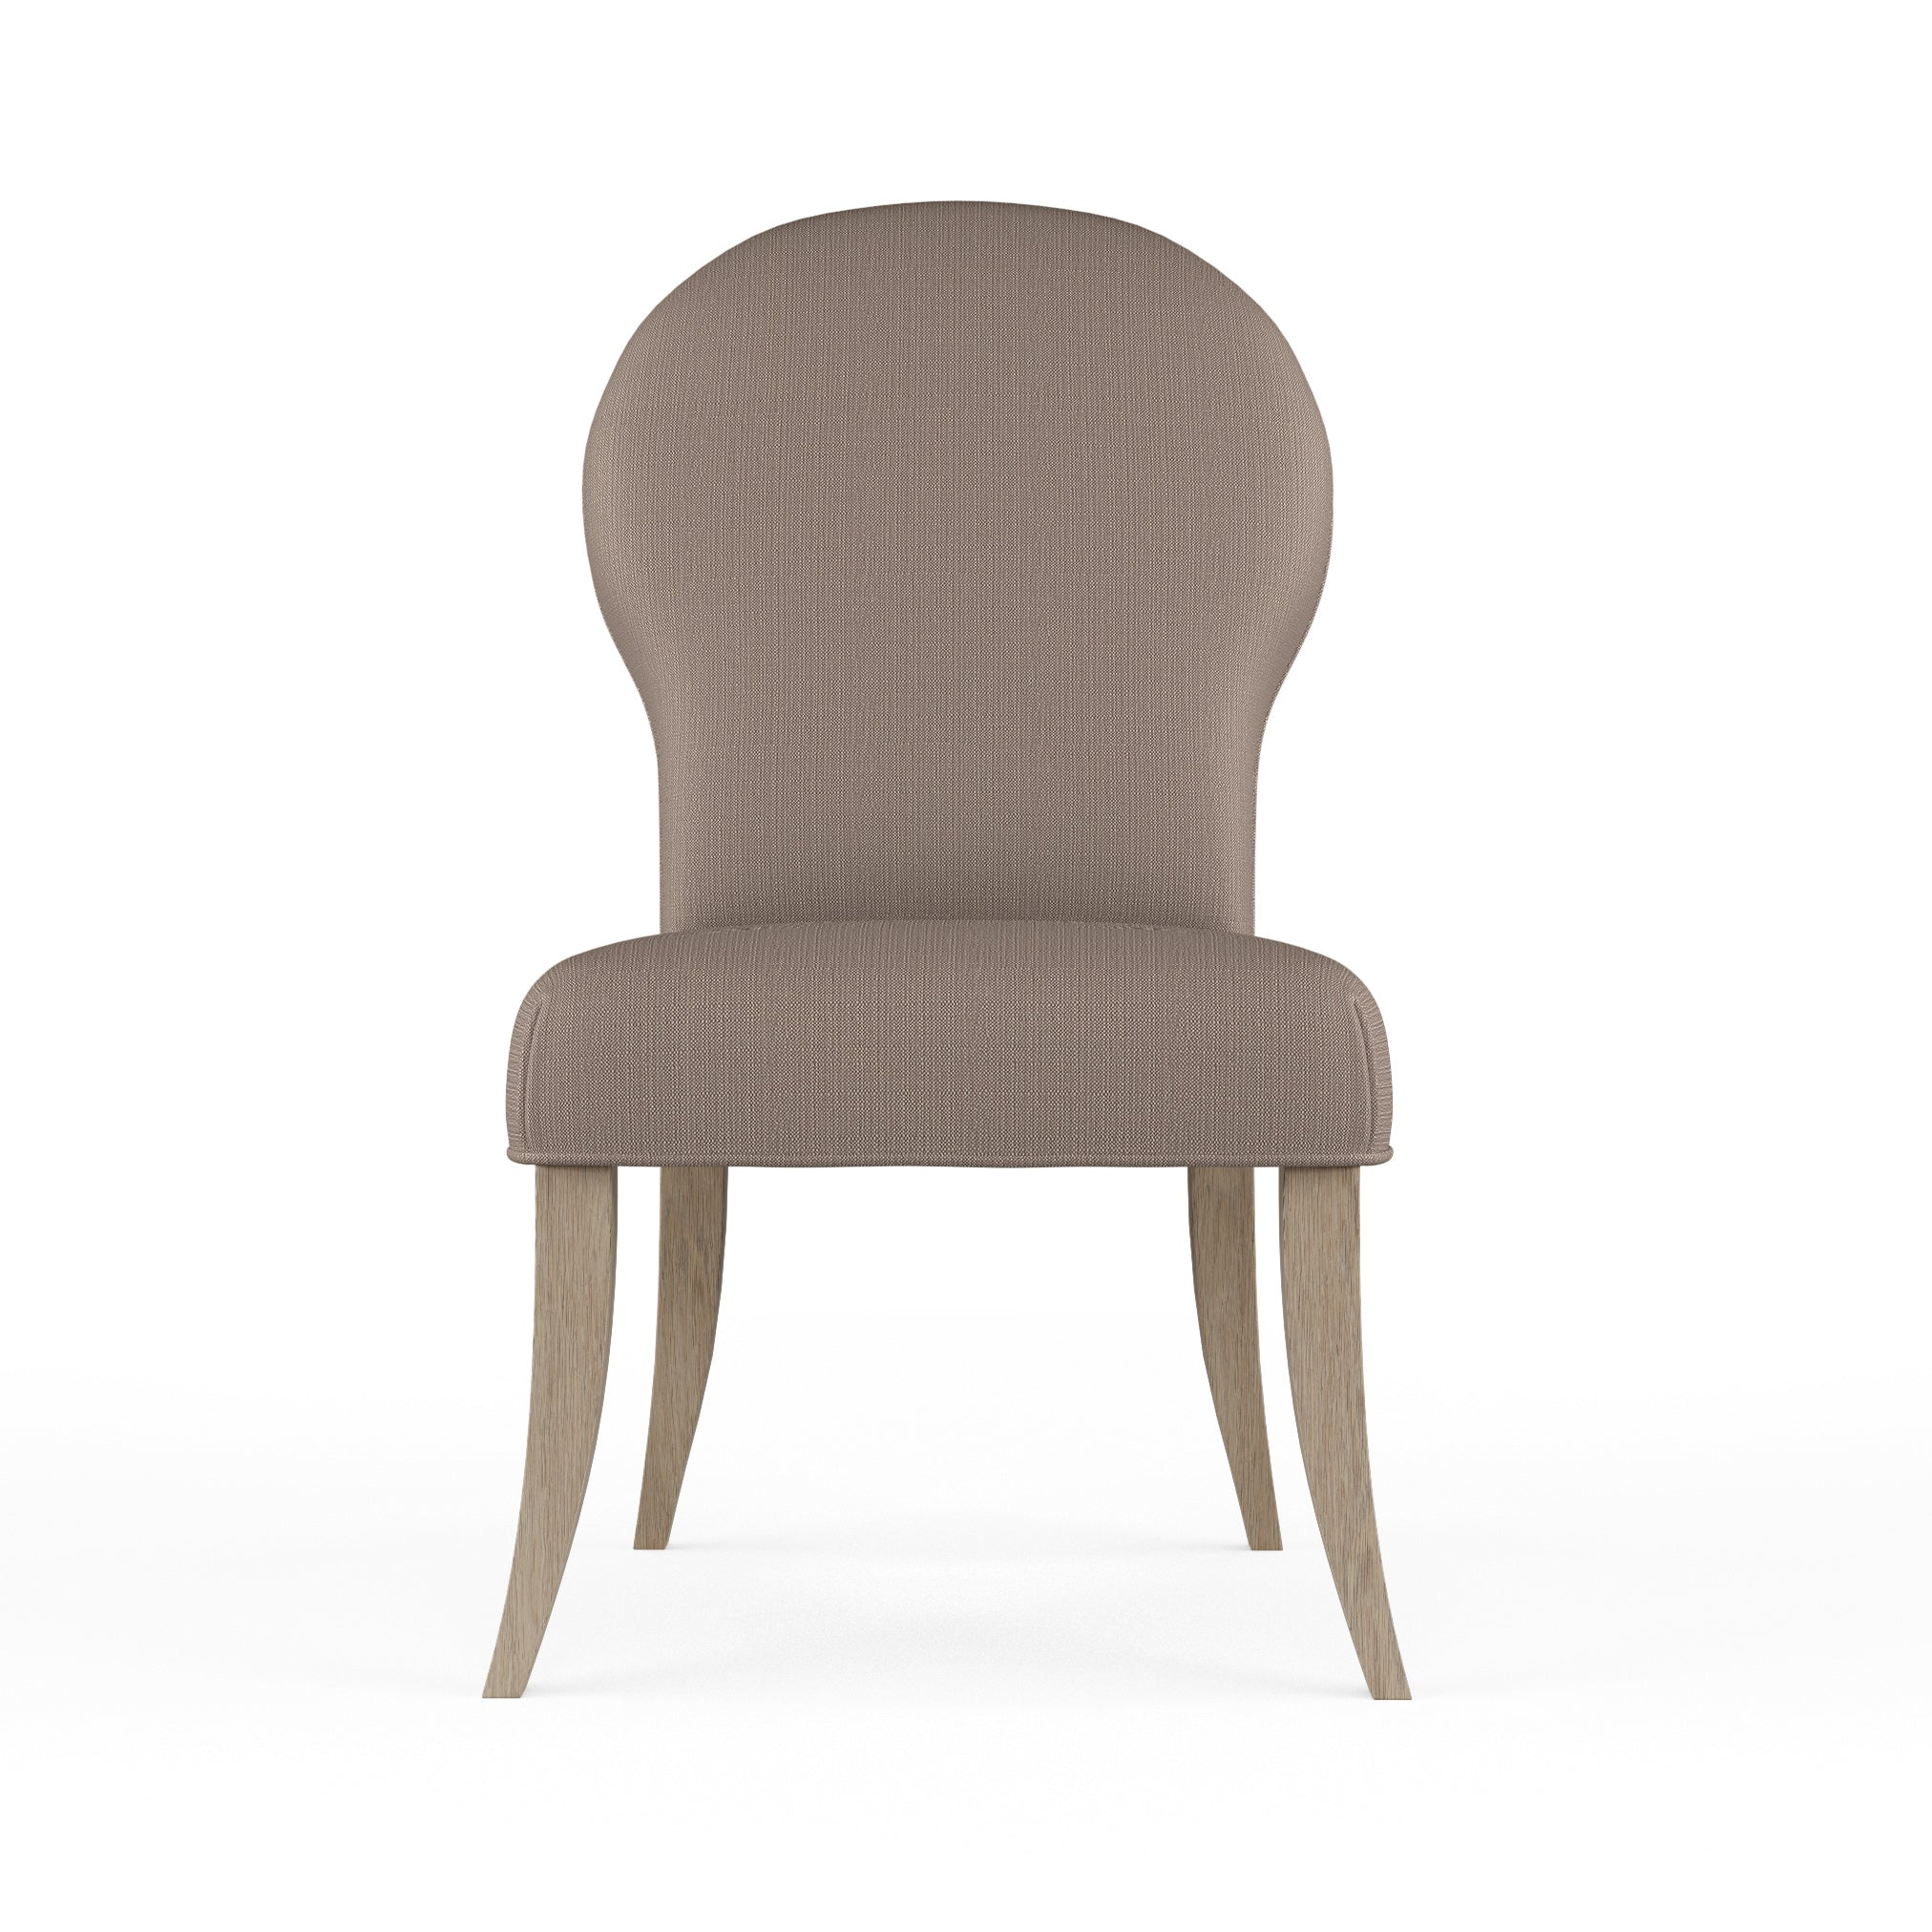 Caitlyn Dining Chair - Pumice Box Weave Linen